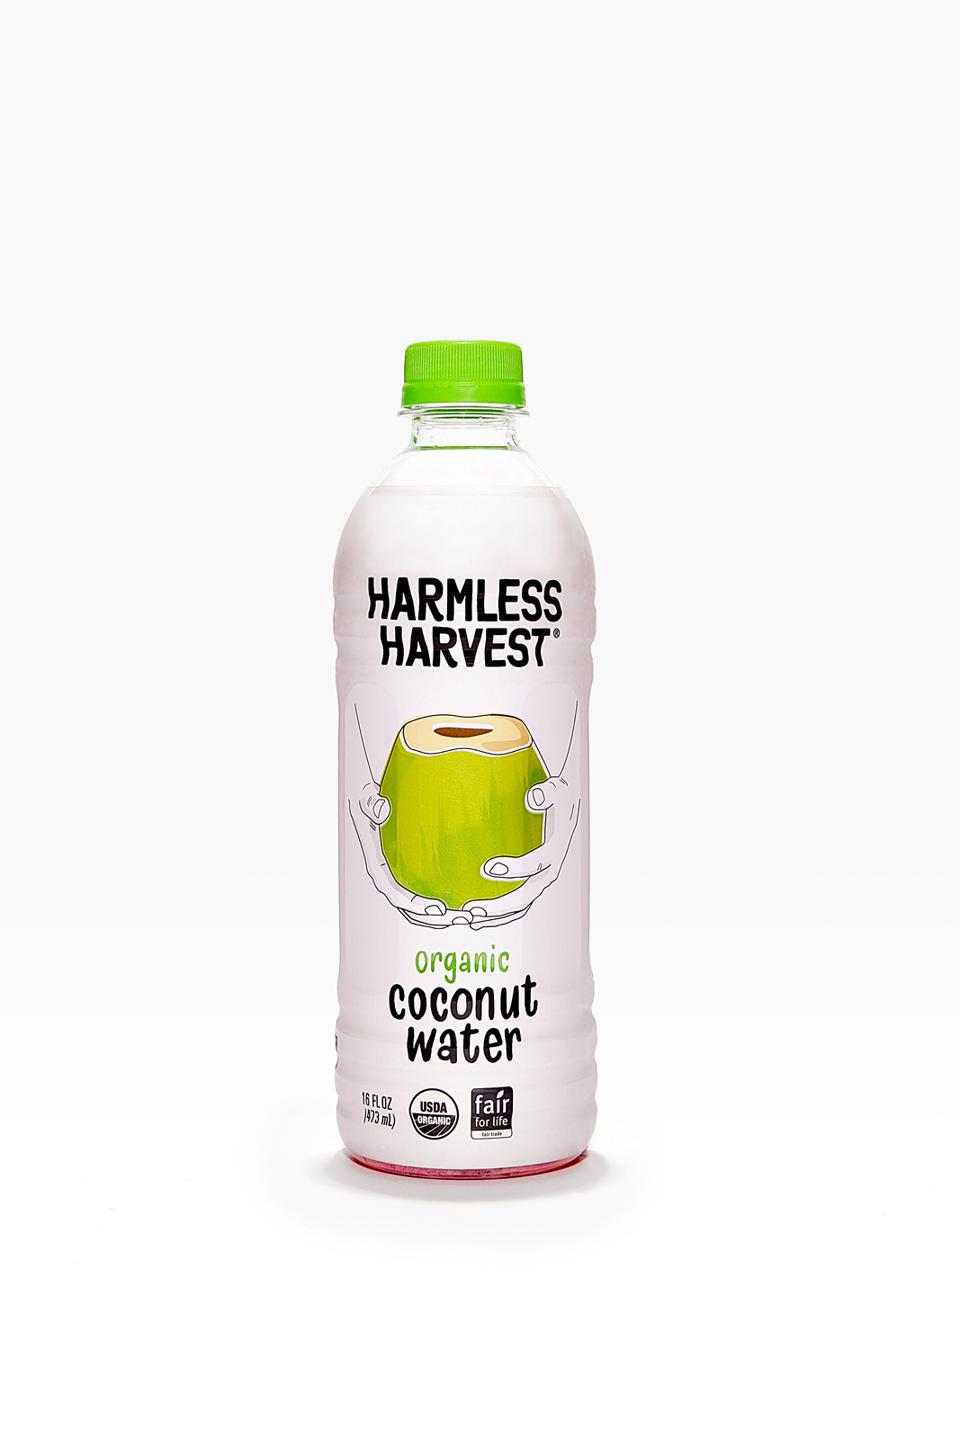 Harmless Harvest is the leading brand of organic coconut water in the U.S.